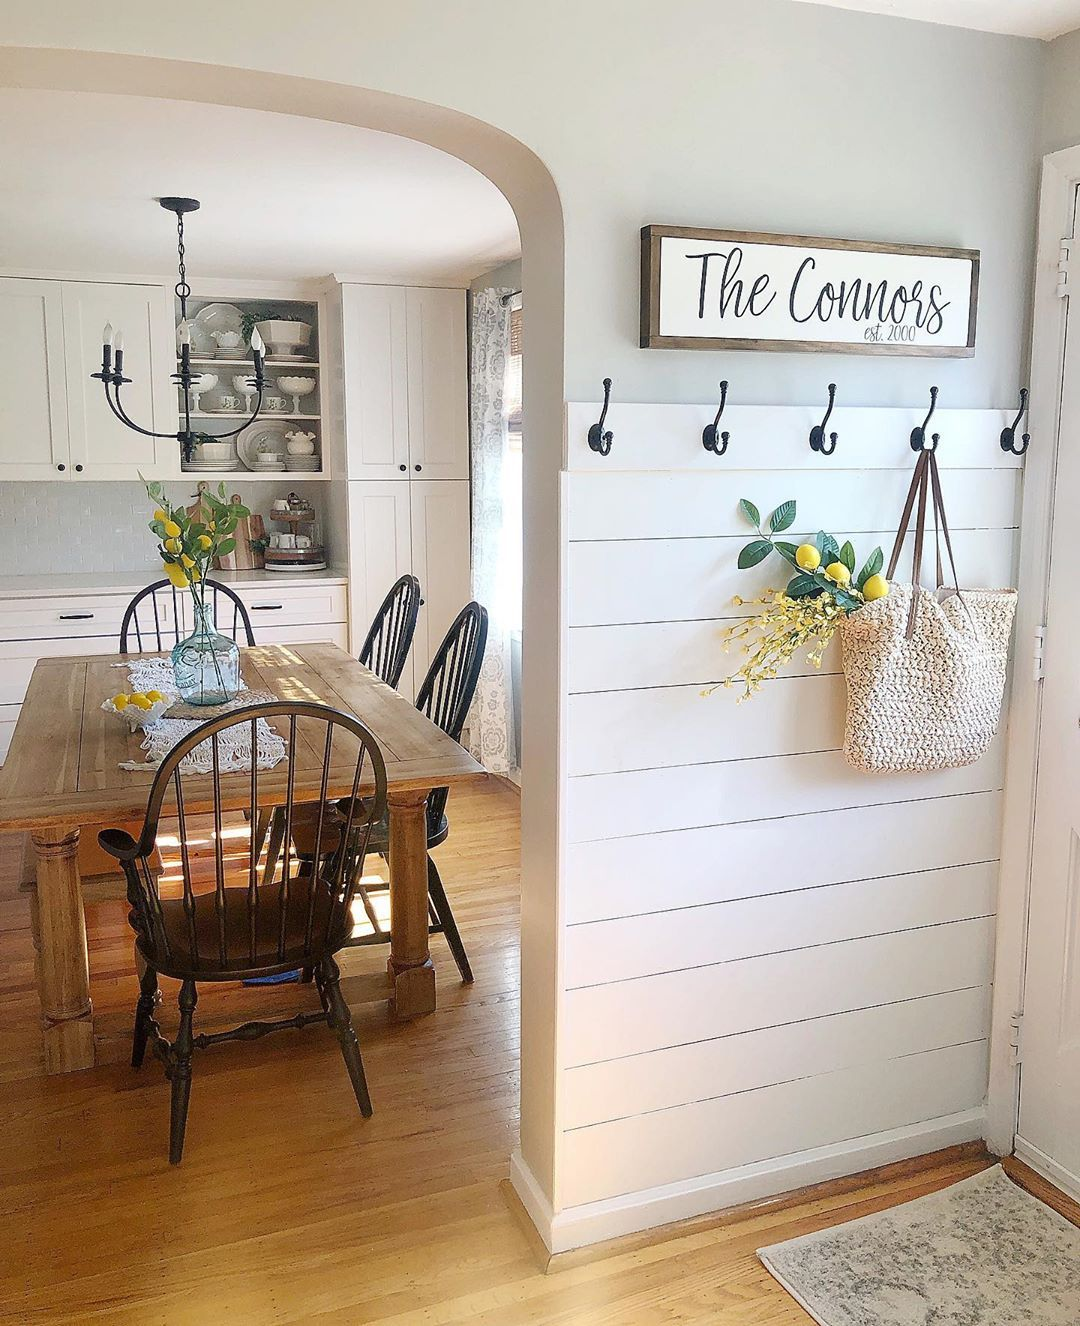 Who Else This Thinking About Having A Shiplap Entry Way